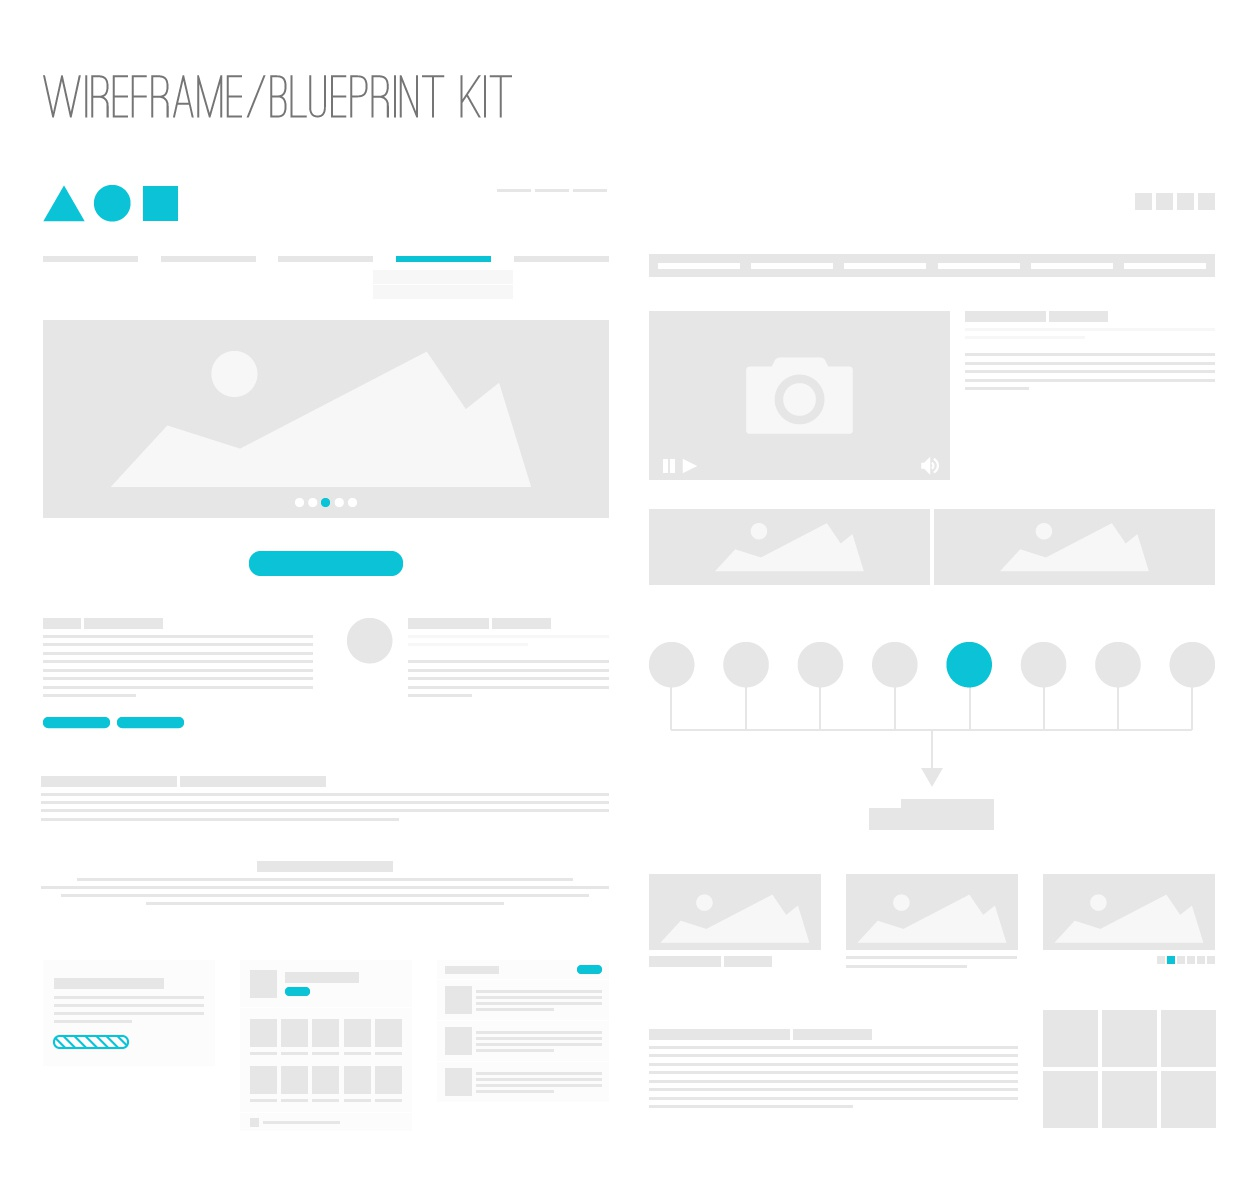 Wireframe blueprint kit